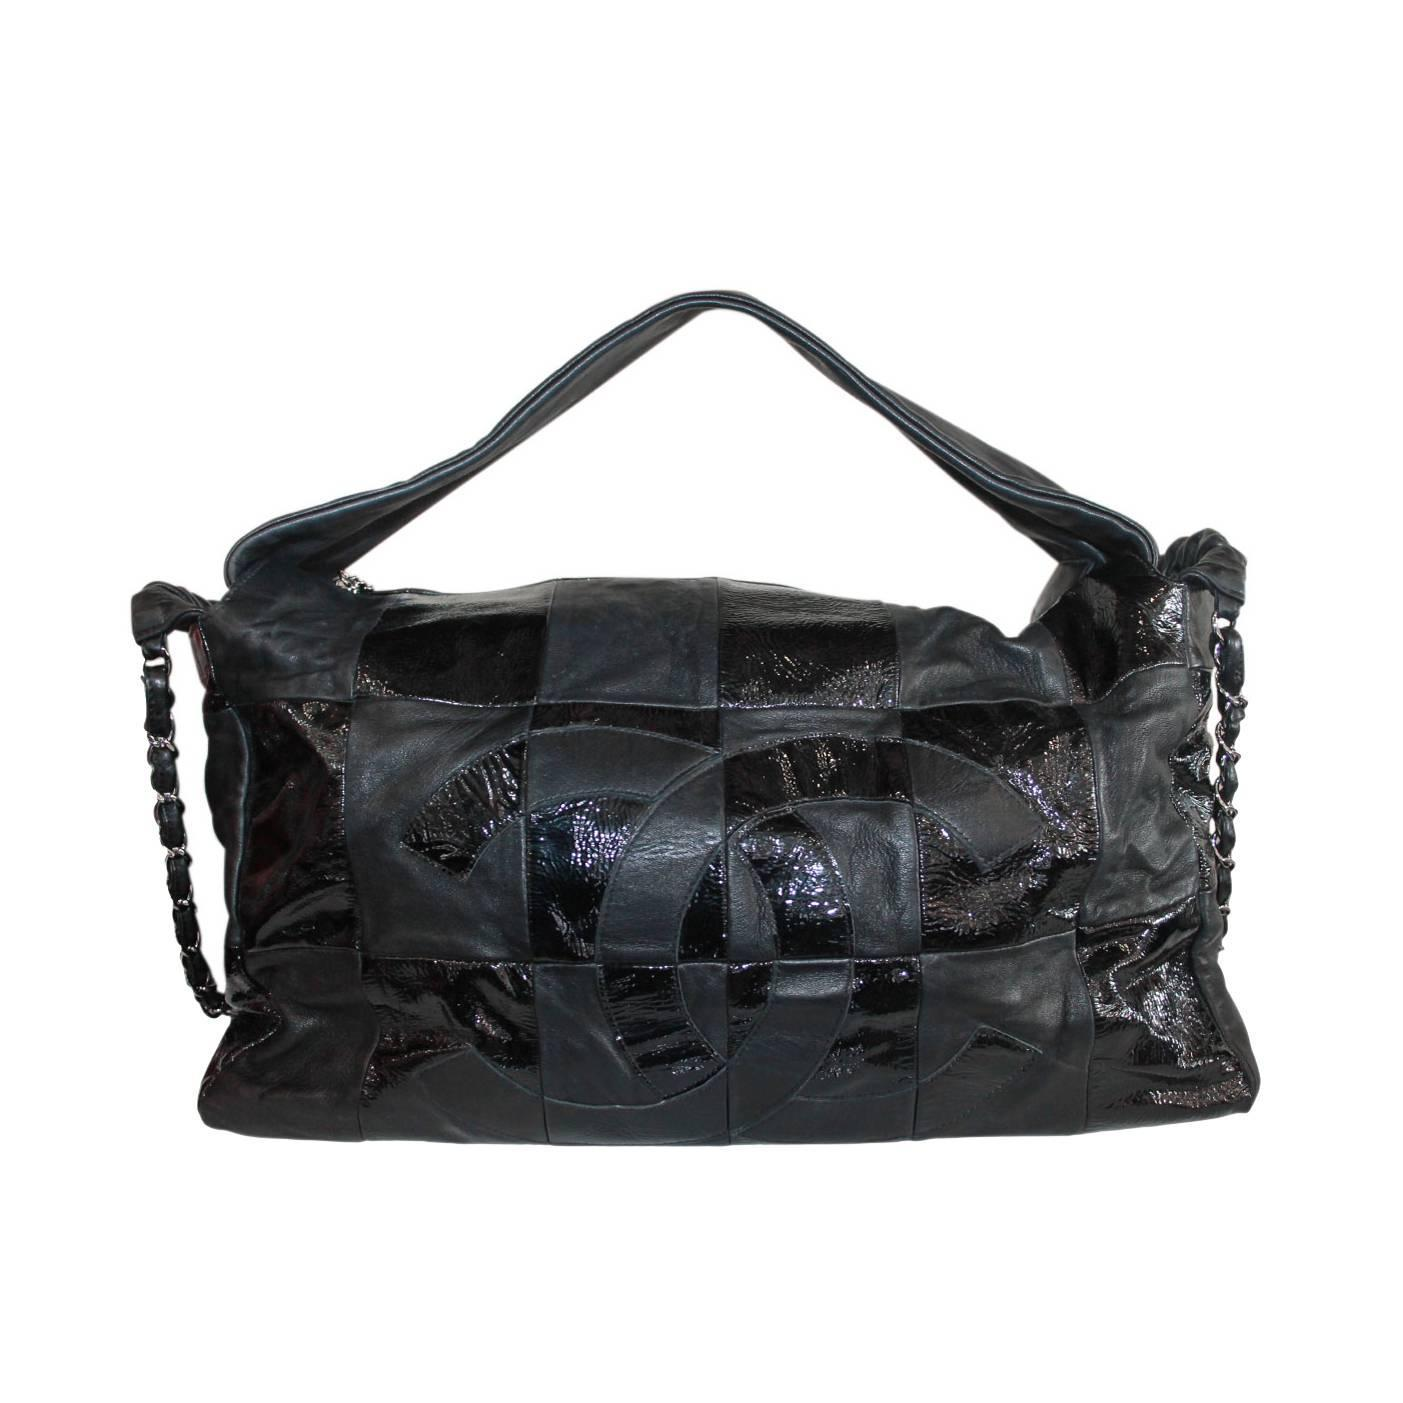 015c19b200bf Chanel Black Lambskin Quilted Shiny Leather No. 11 Hobo Bag with SHW Chain  For Sale at 1stdibs